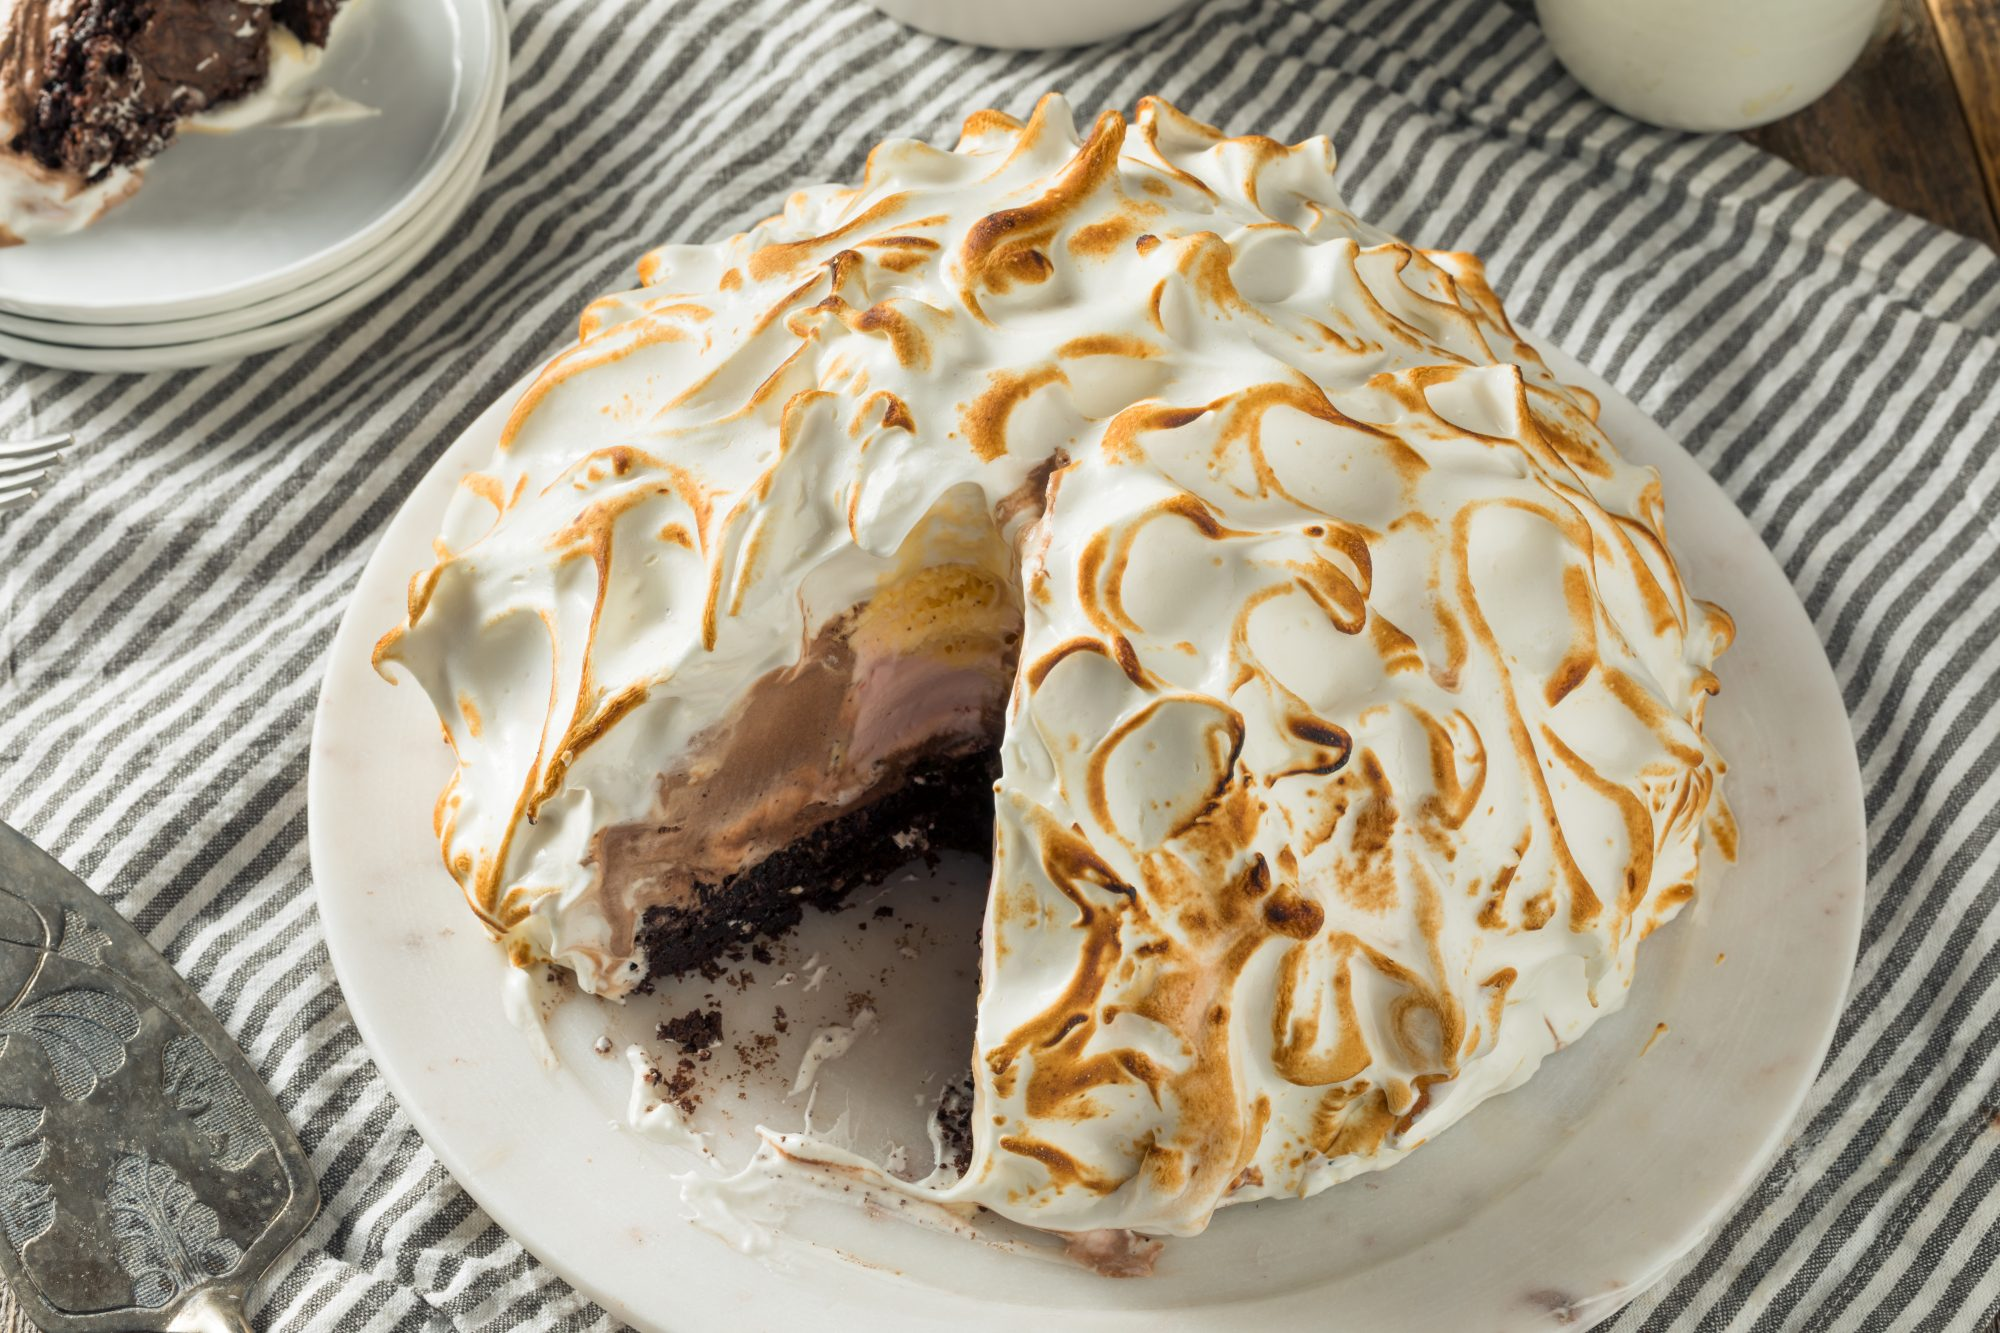 Chocolate Baked Alaska Getty 8/12/20